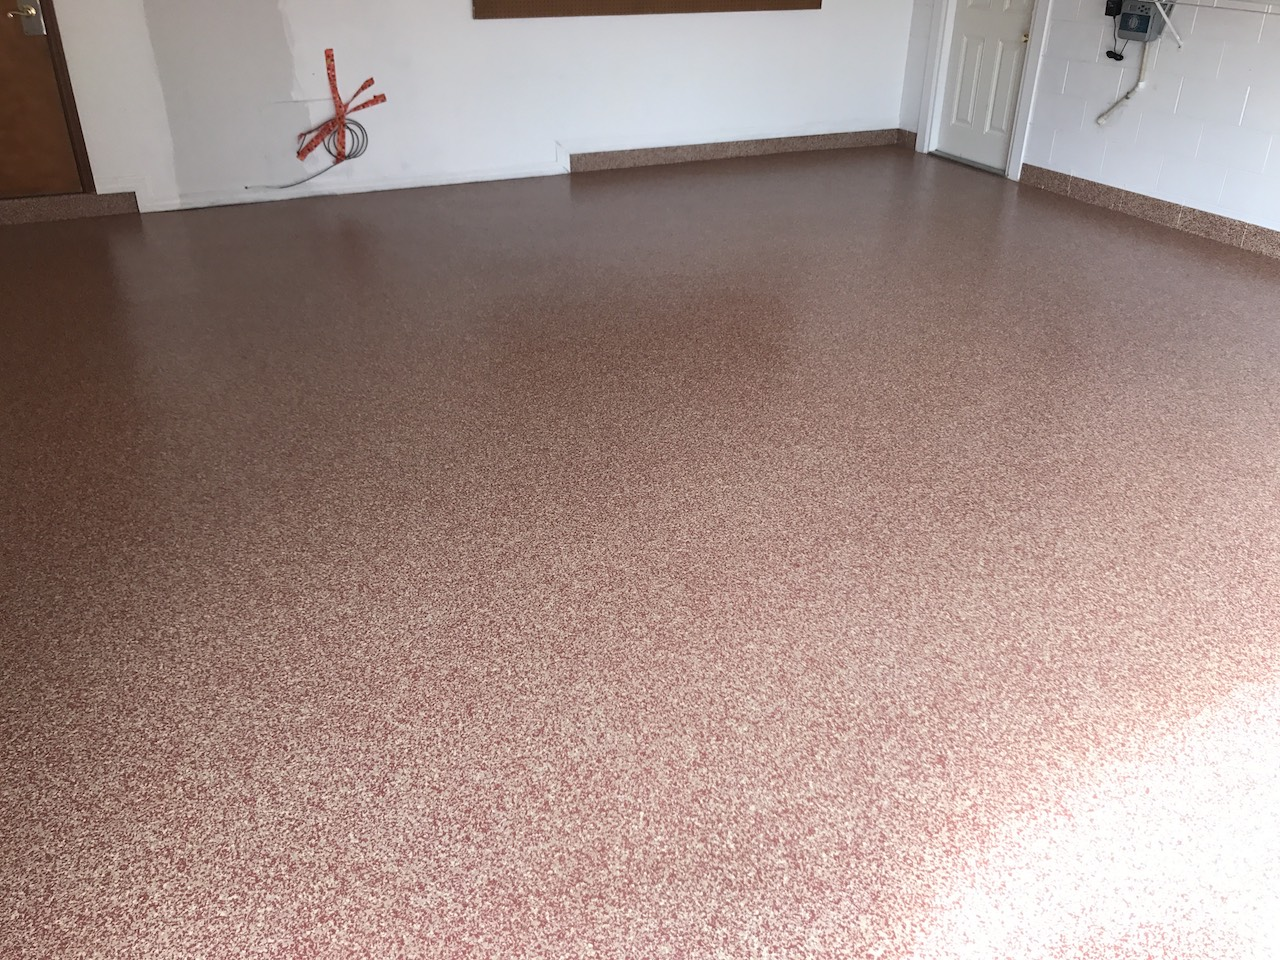 coatings full paint square flooring house floors foot size after coating ratings cost large texas of armorclad garage contractors dallas per awful epoxy floor makeover garageloor inspirations picture white